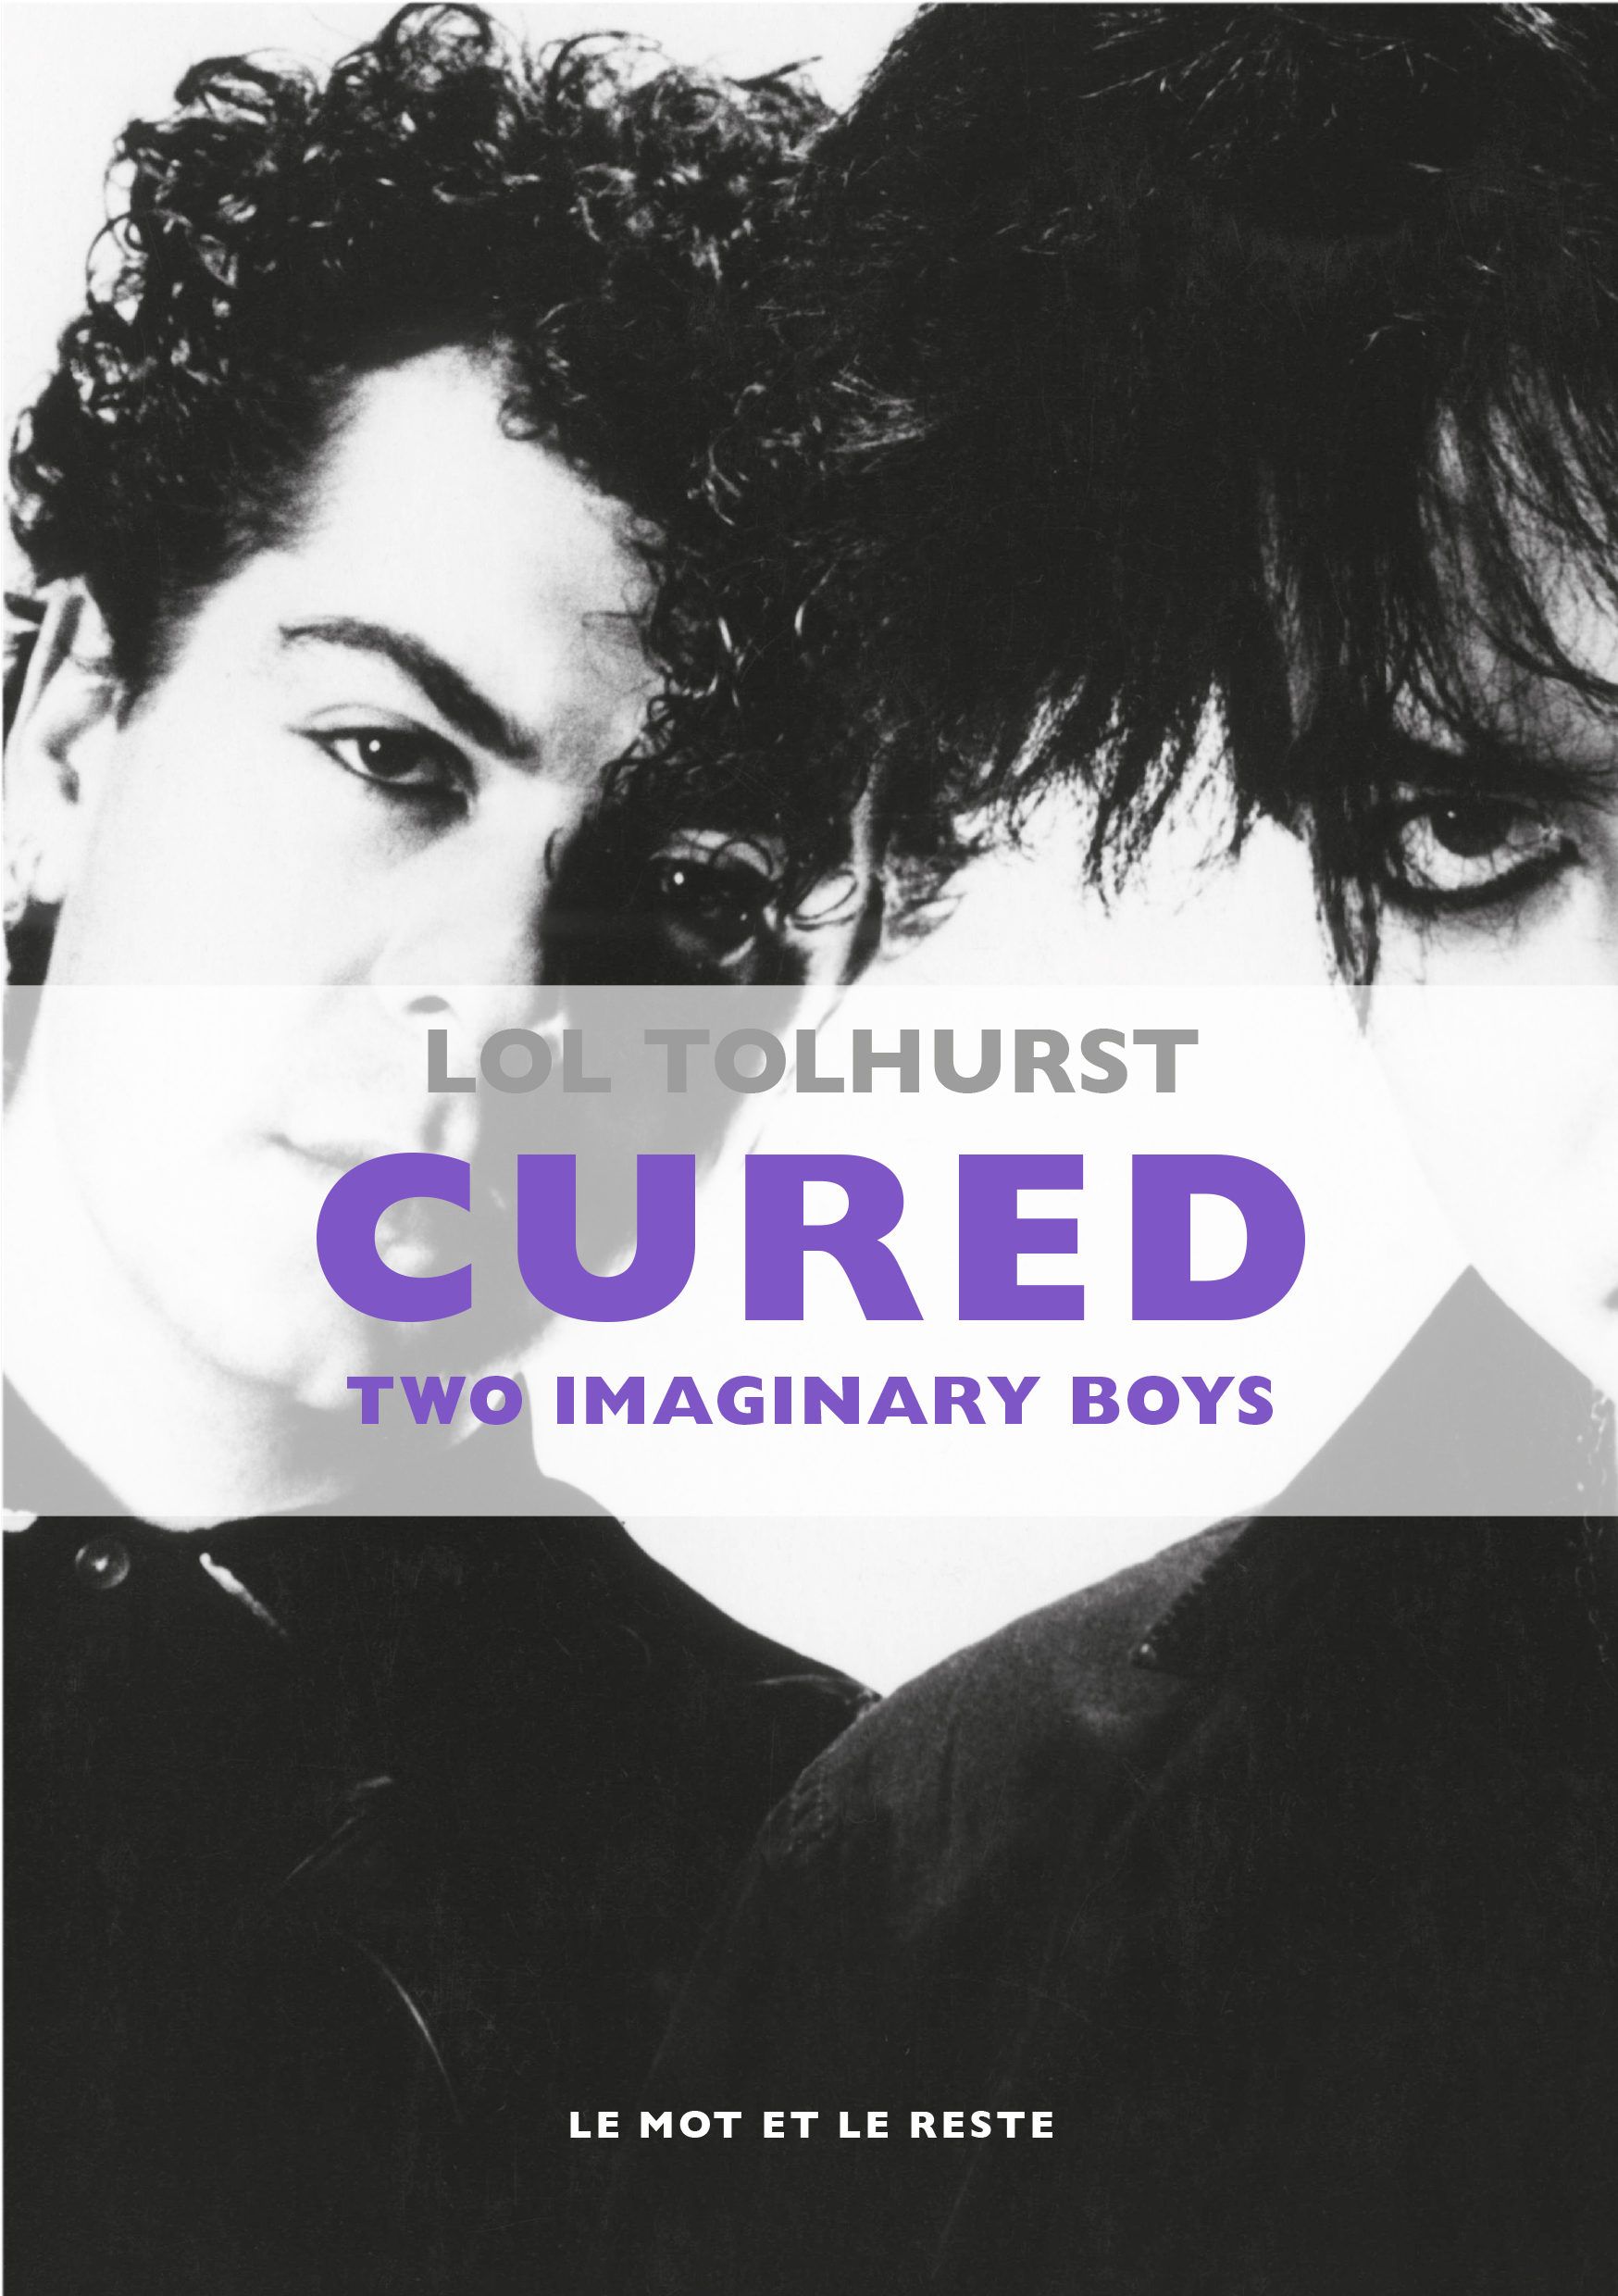 Cured | TOLHURST, Lol